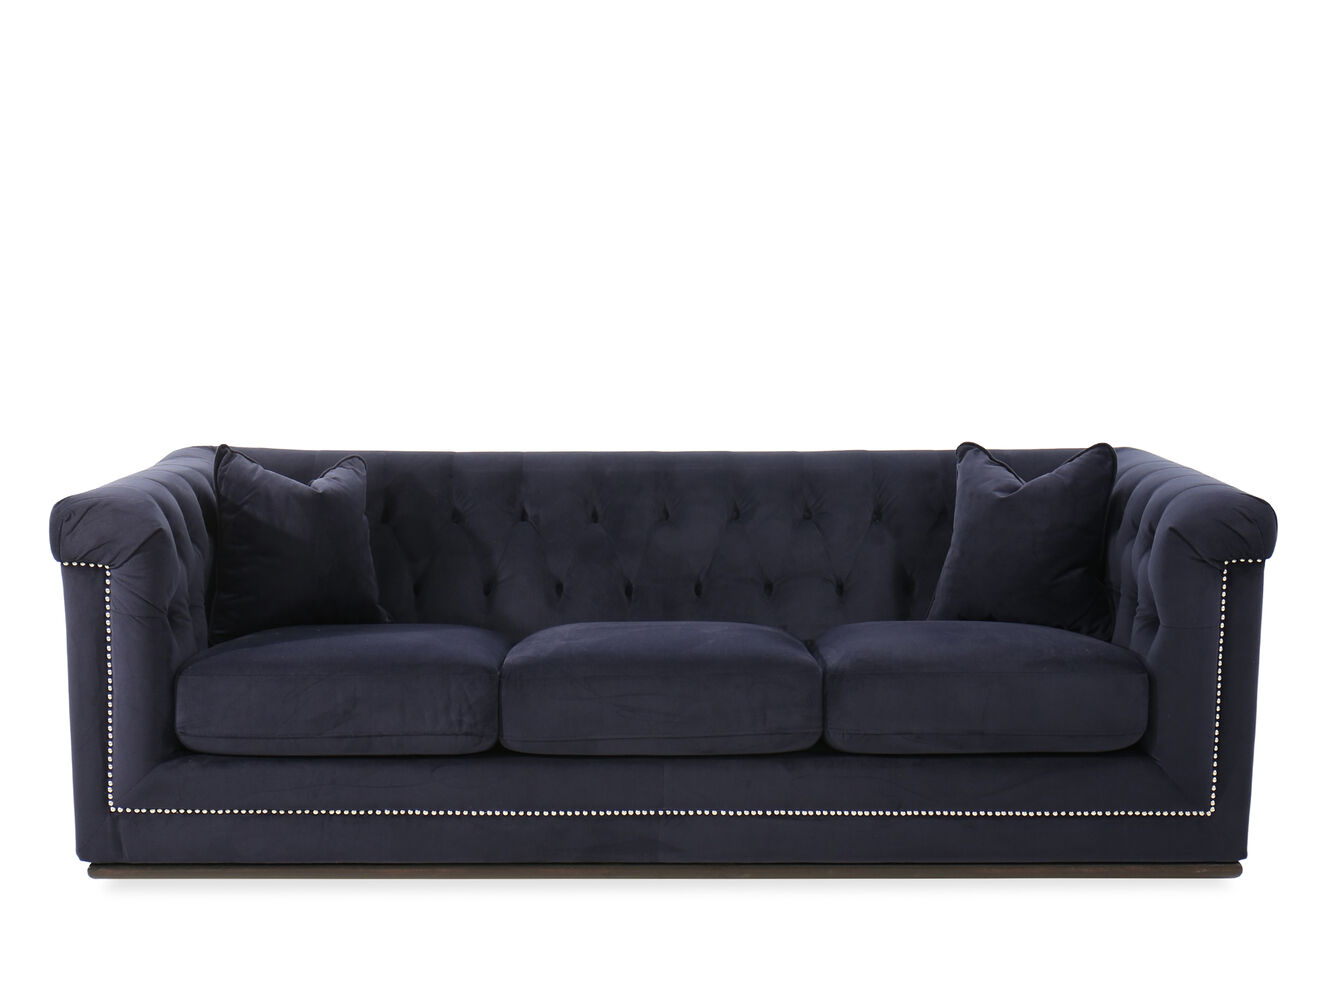 Boulevard Serenity Sofa. Boulevard Serenity Sofa   Mathis Brothers Furniture